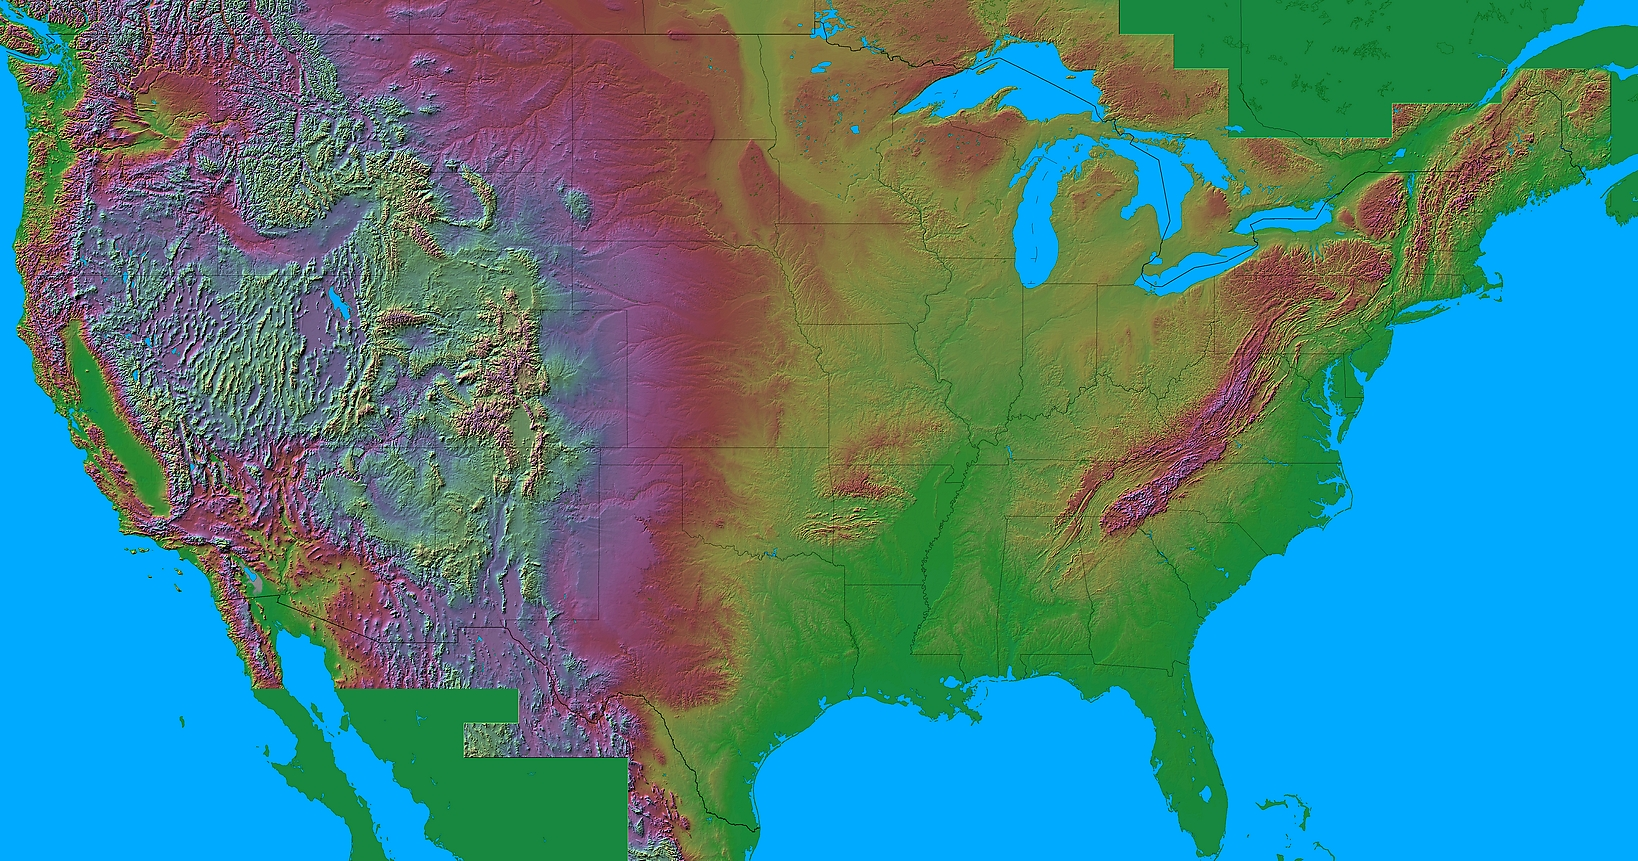 in the united states cold air damming occurs over the eastern foothills of the appalachians and rockies to see what i mean check out this us relief map